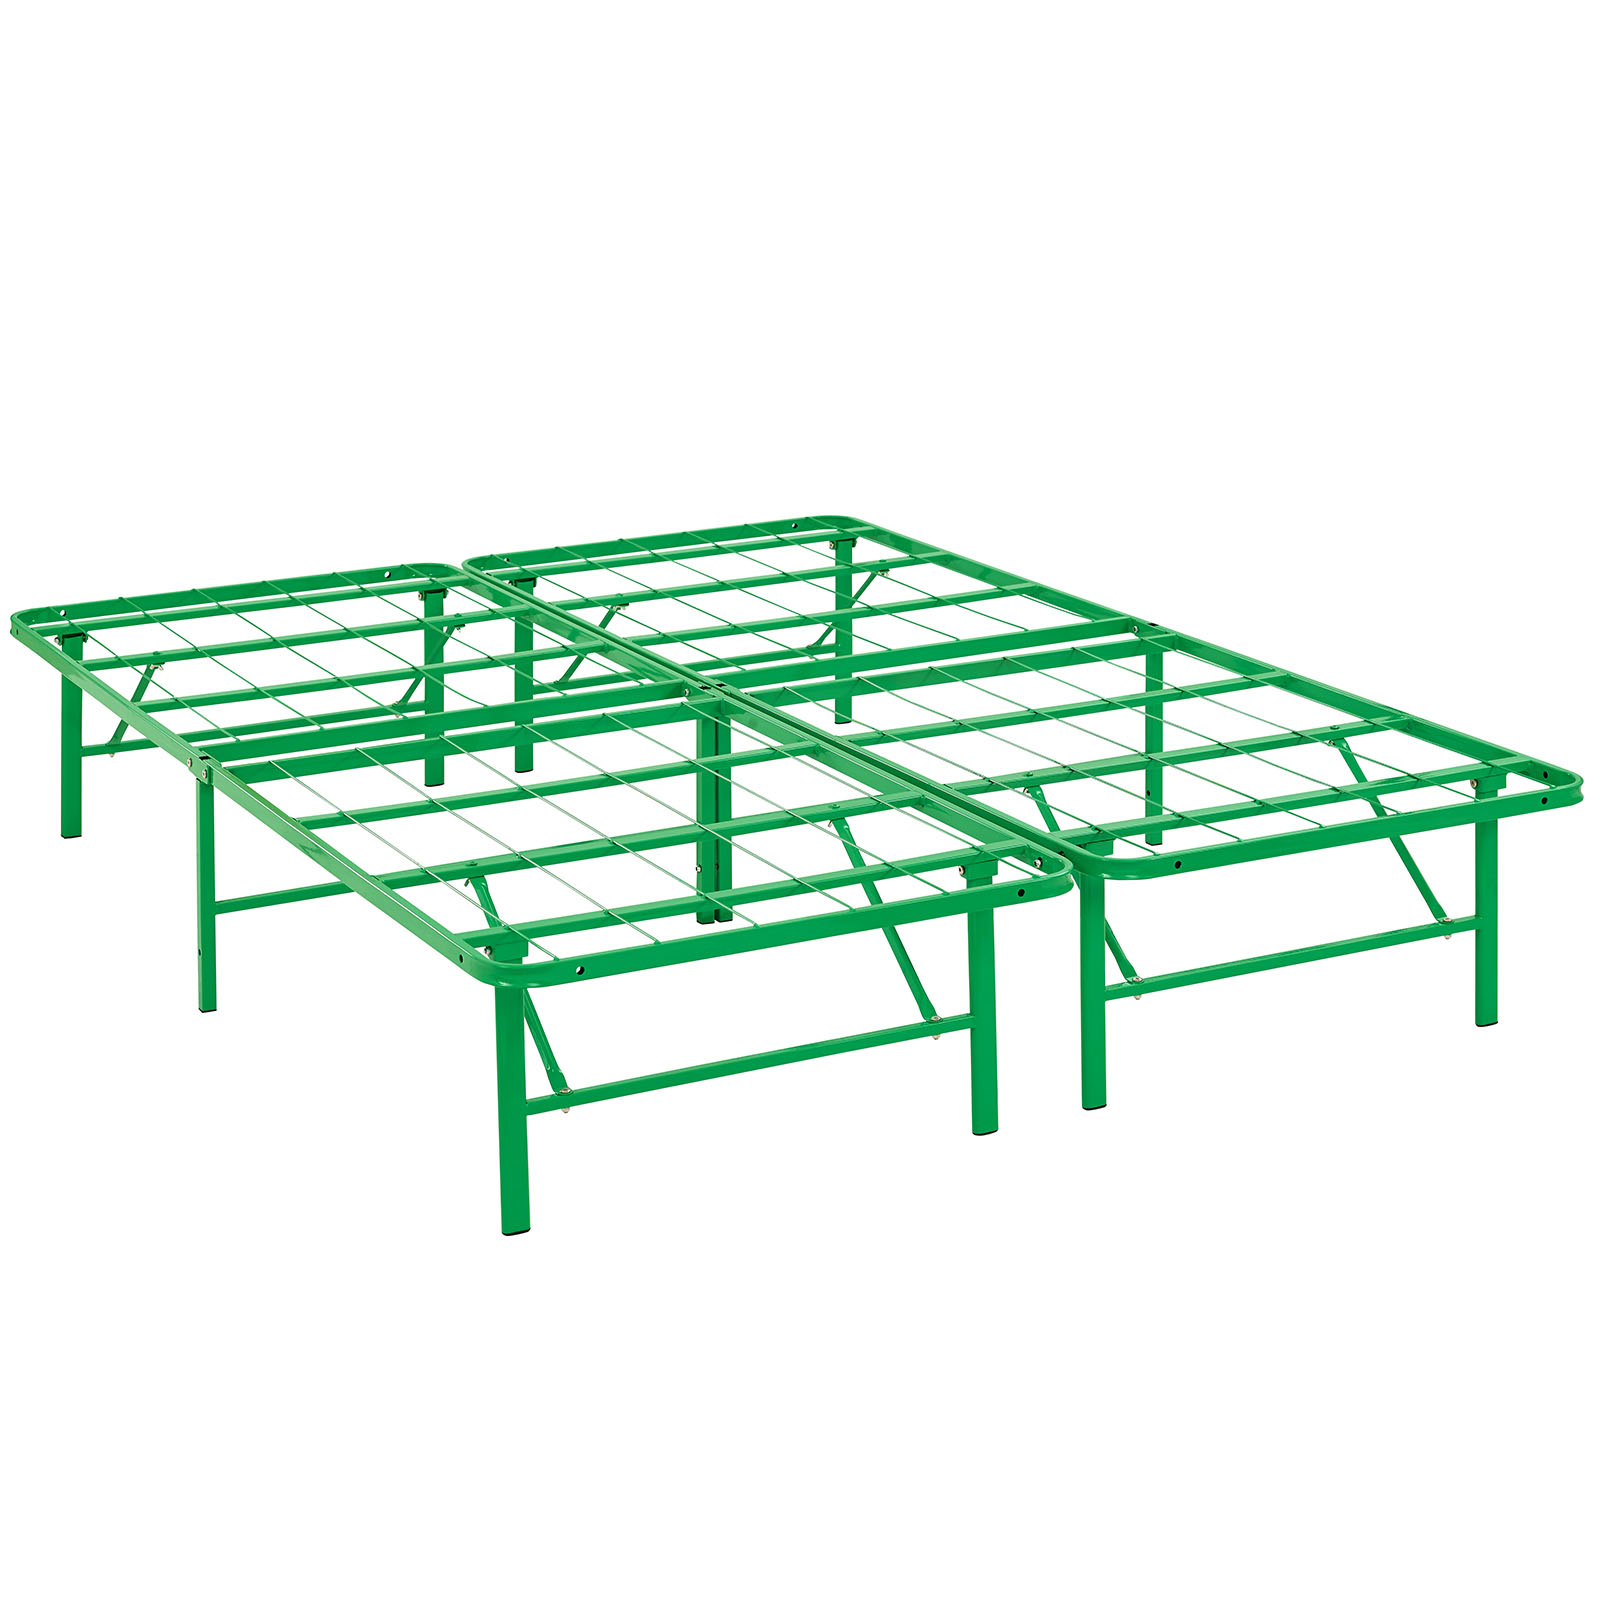 Modern Contemporary Urban Design Bedroom Queen Size Platform Bed Frame, Green, Metal Steel